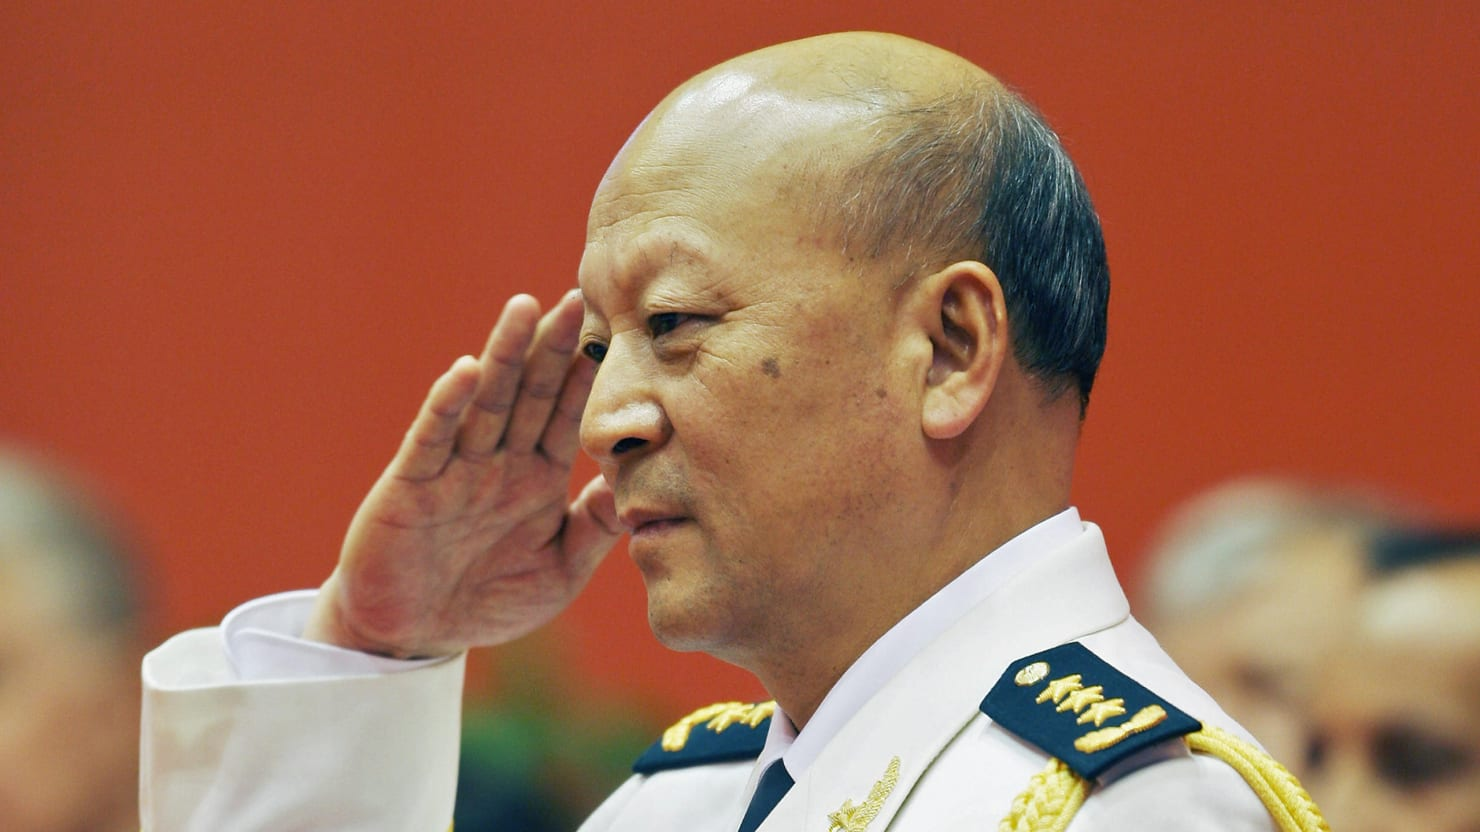 China's Dangerous War Talk About the South China Sea